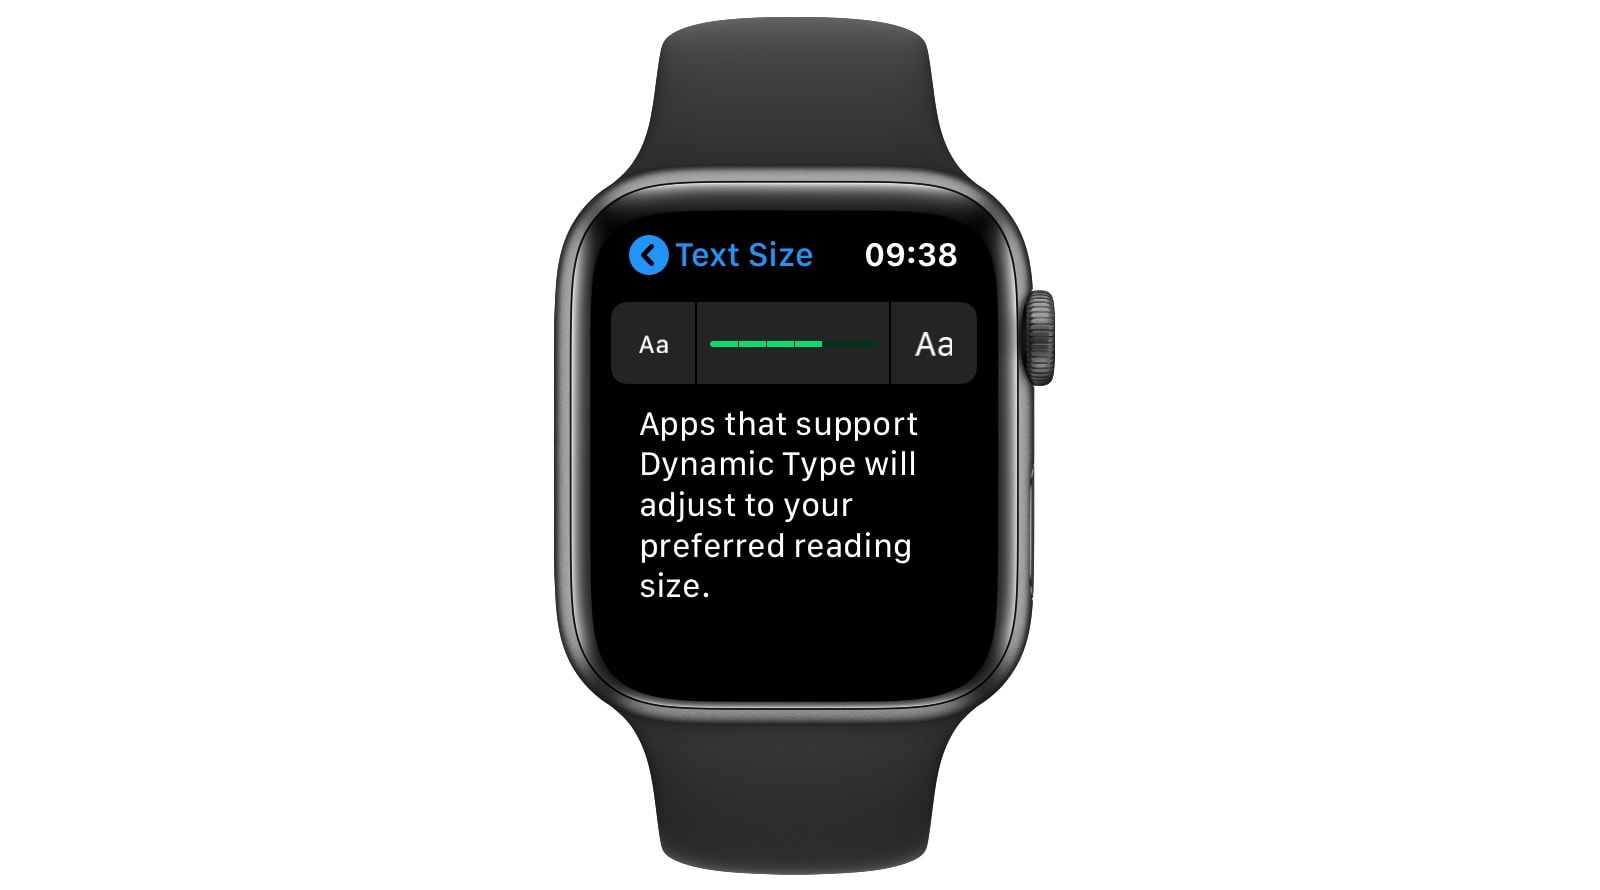 Maybe you just want to make Apple Watch text a bit bigger.